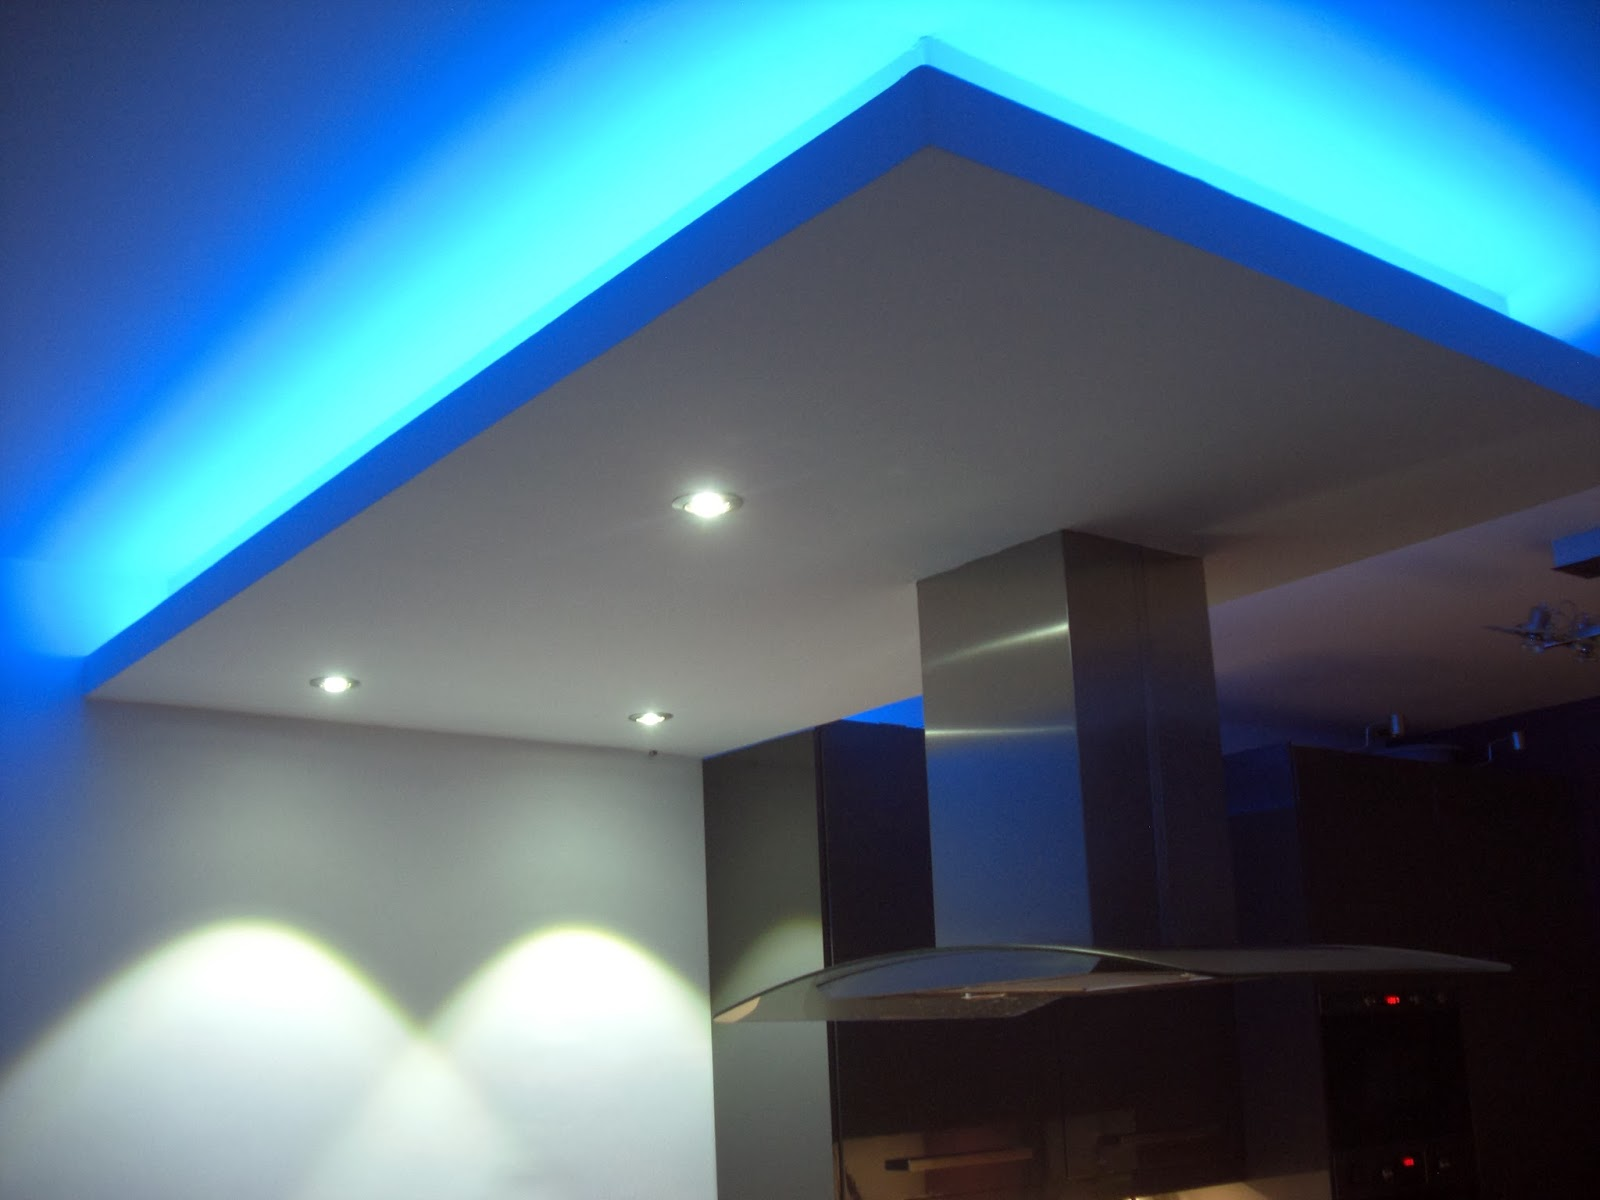 Plafonnier Suspendu Led Faux Plafond Suspendu Led Gp65 Jornalagora